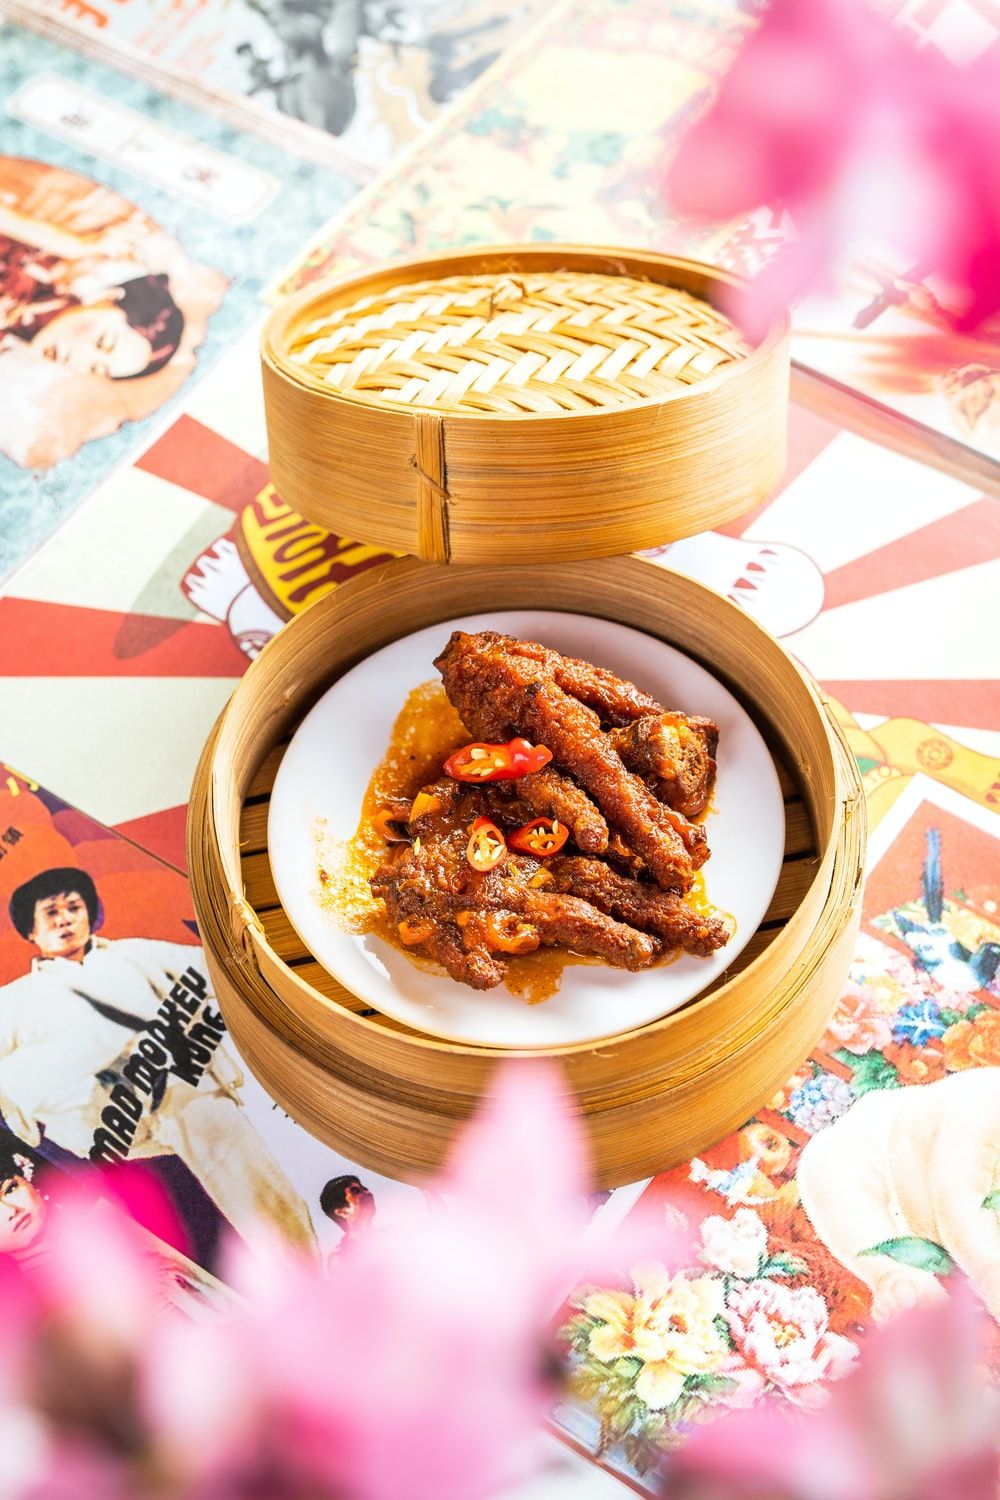 fried food on brown woven round plate